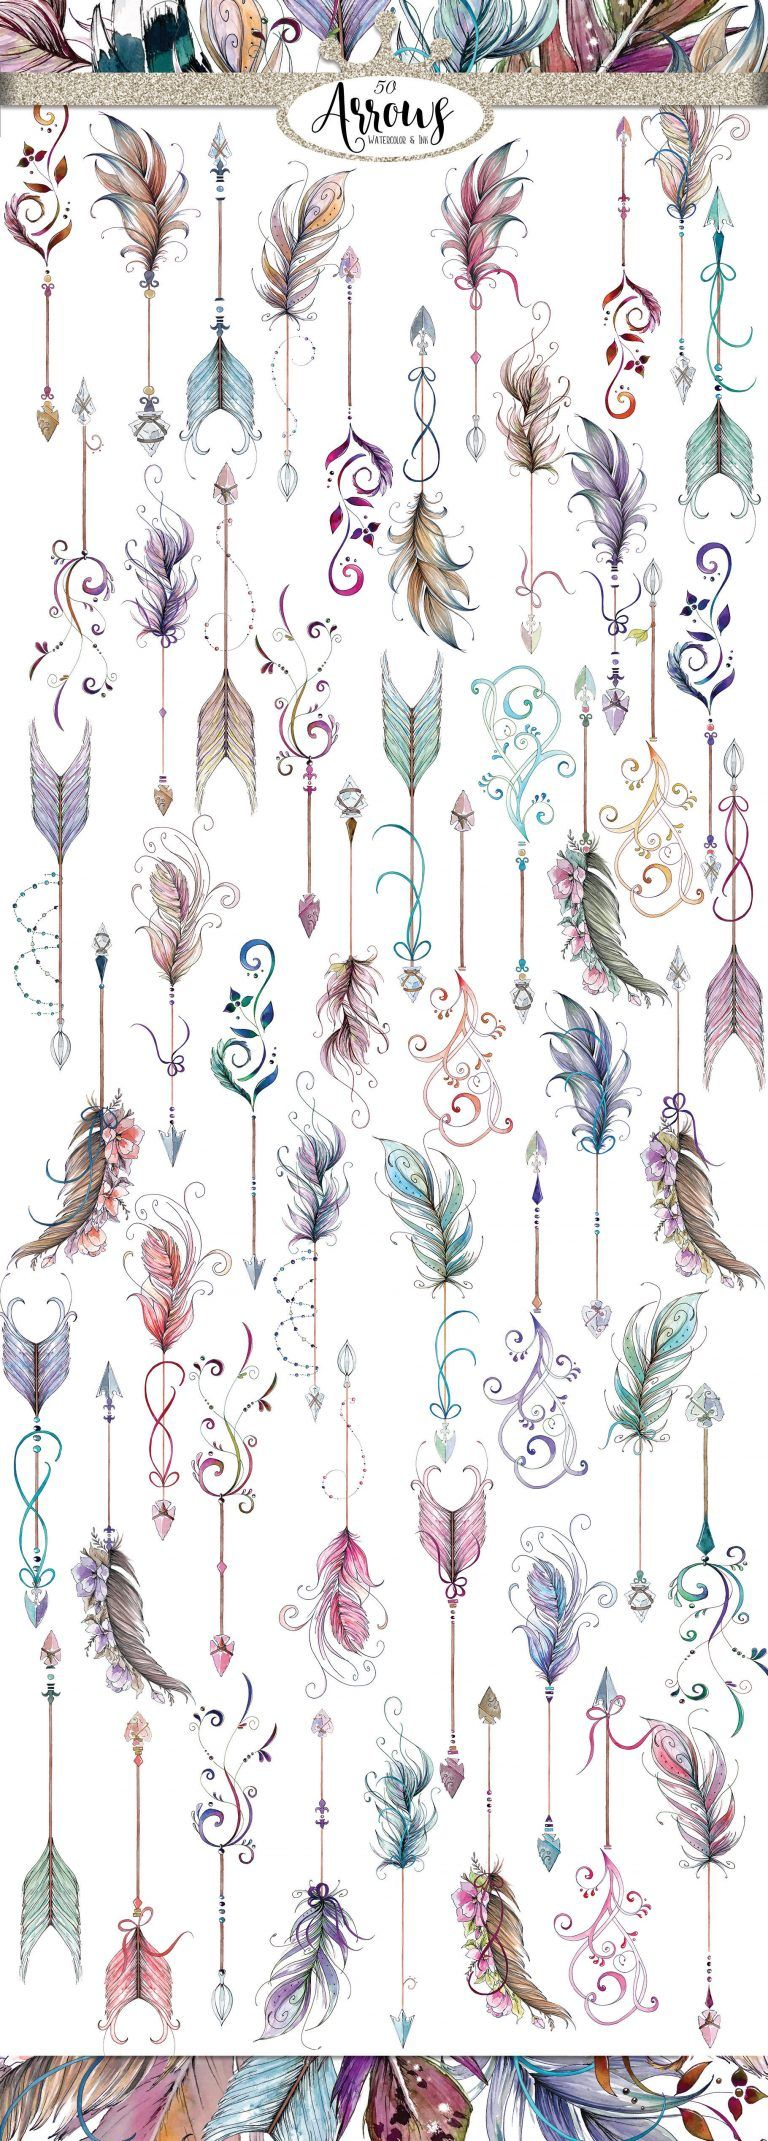 These beautiful boho feather arrows and more are a free gift when you sign up for email and they are just beautiful